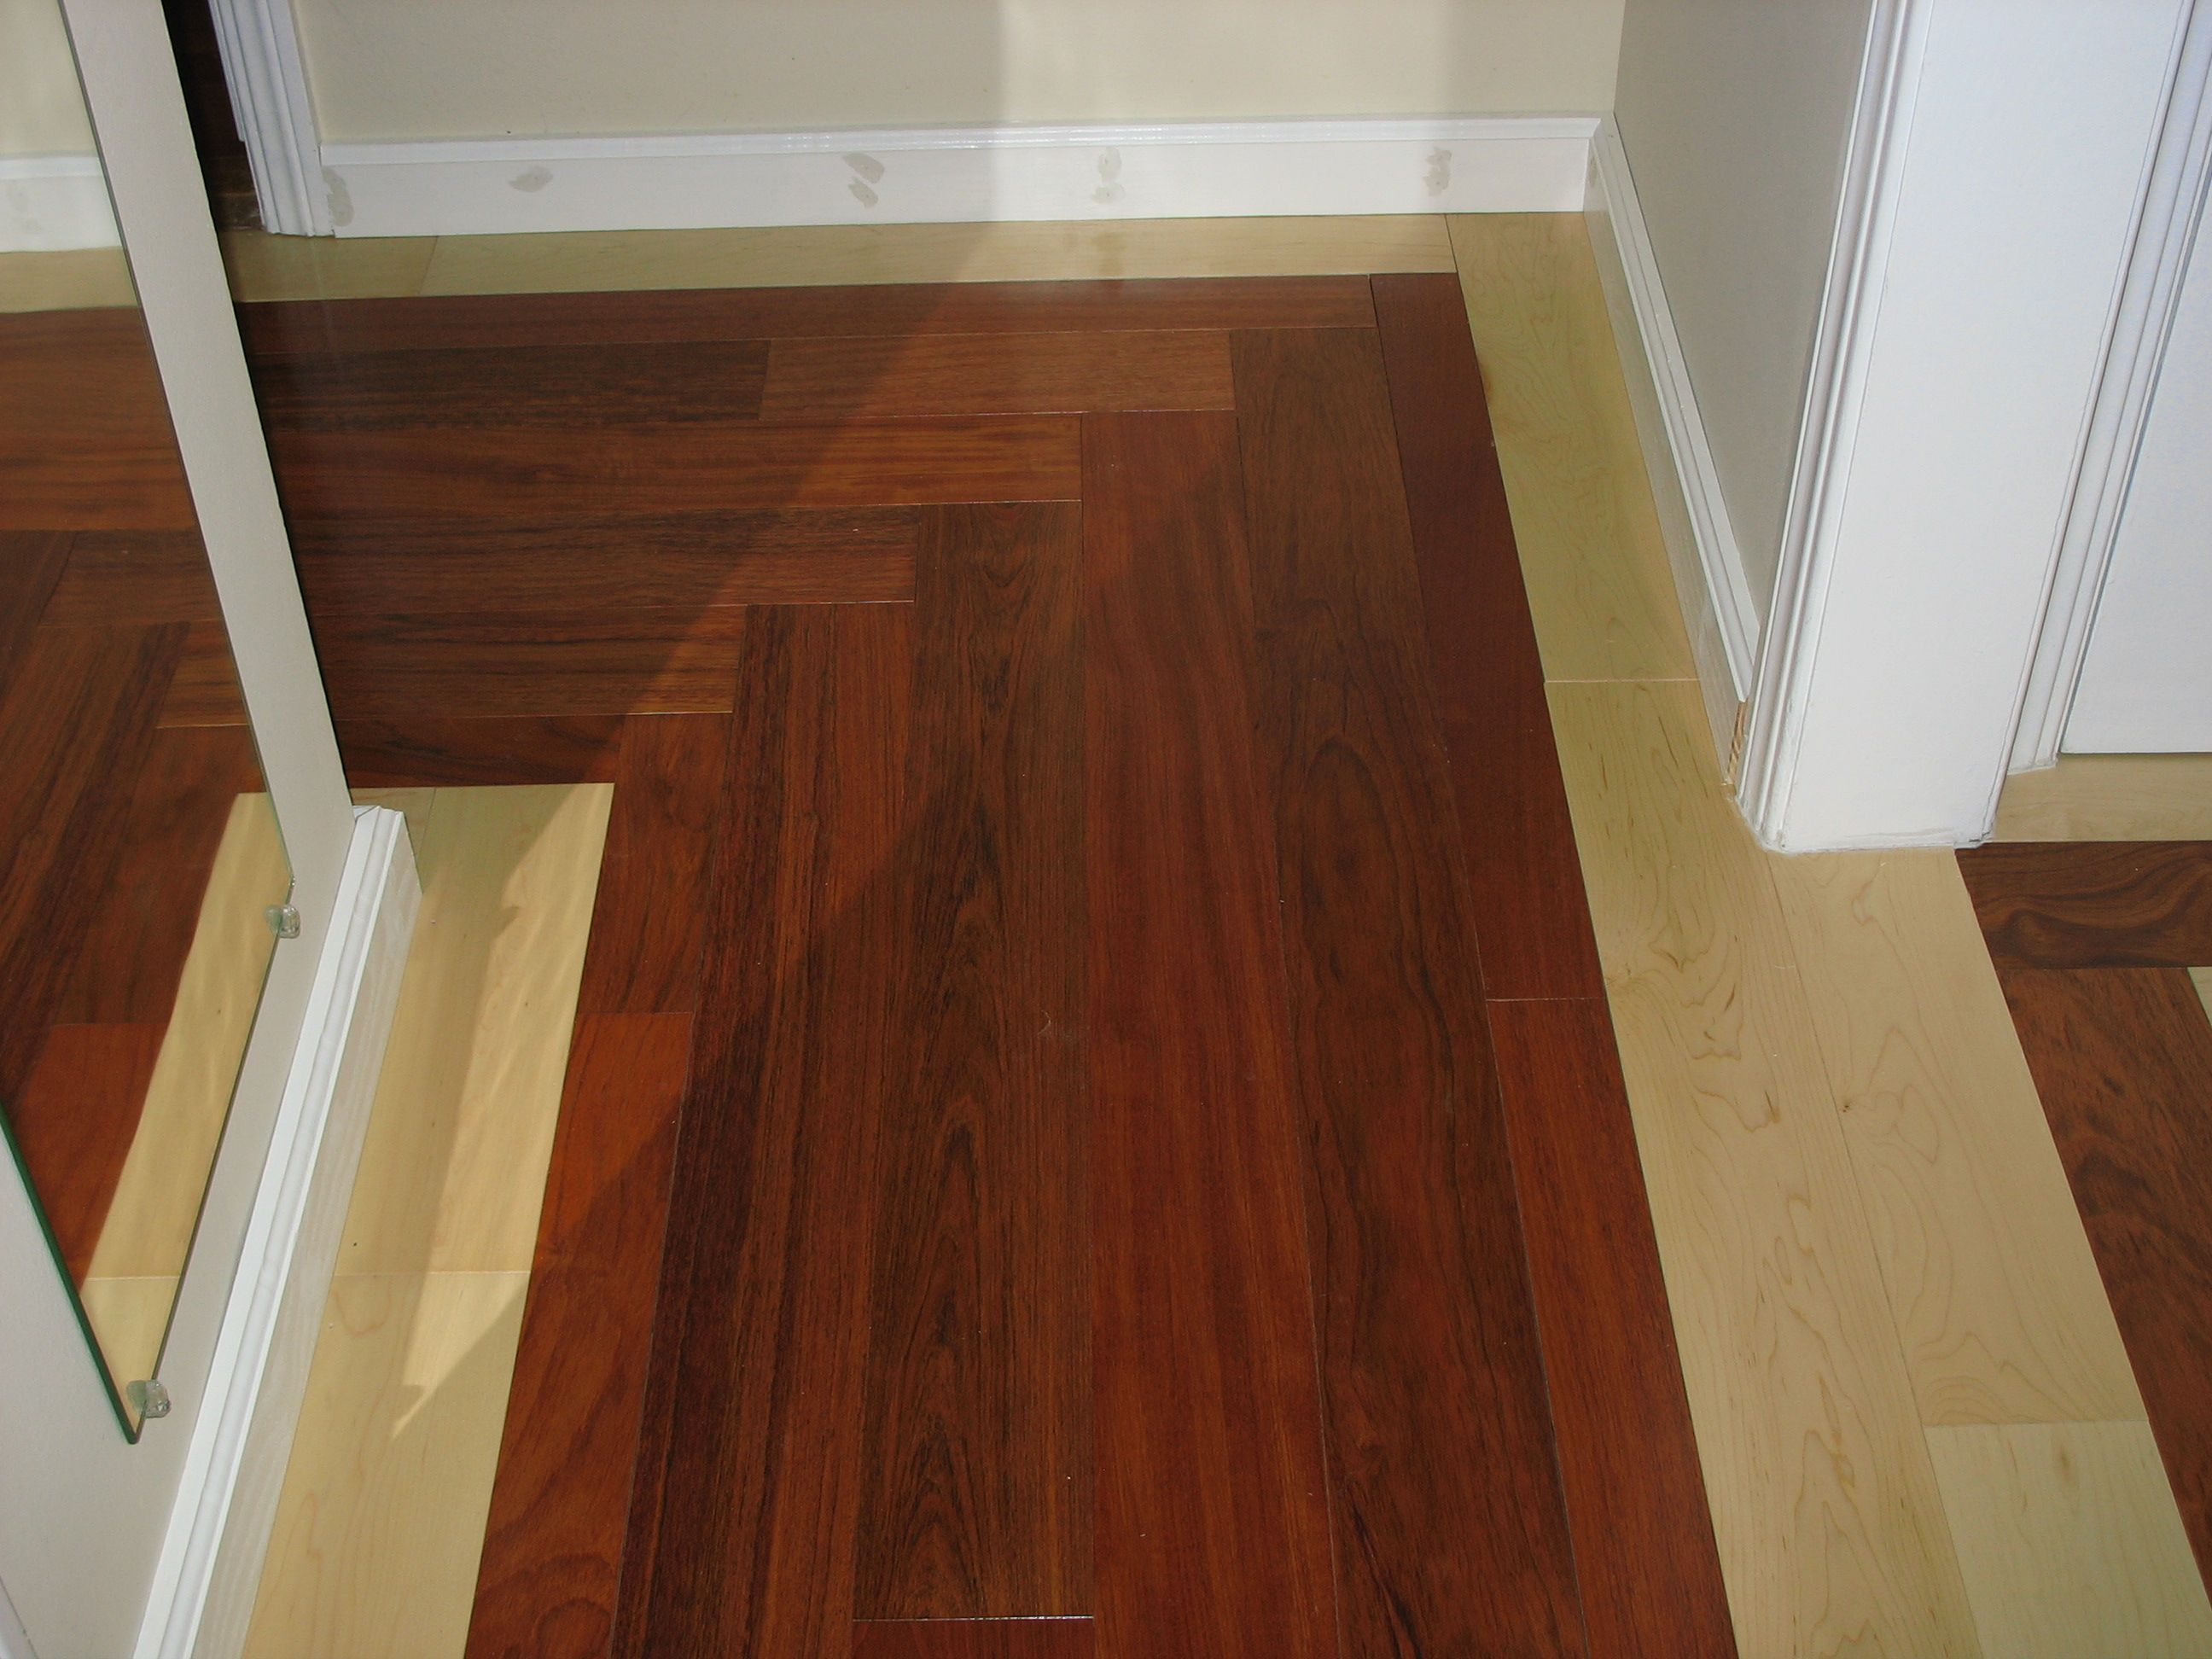 Lltrends And Lumberliquidators Maple And Brazilian Cherry Mixed For A Dramatic Look Do You Dare Flooring Hardwood Floors Floor Colors